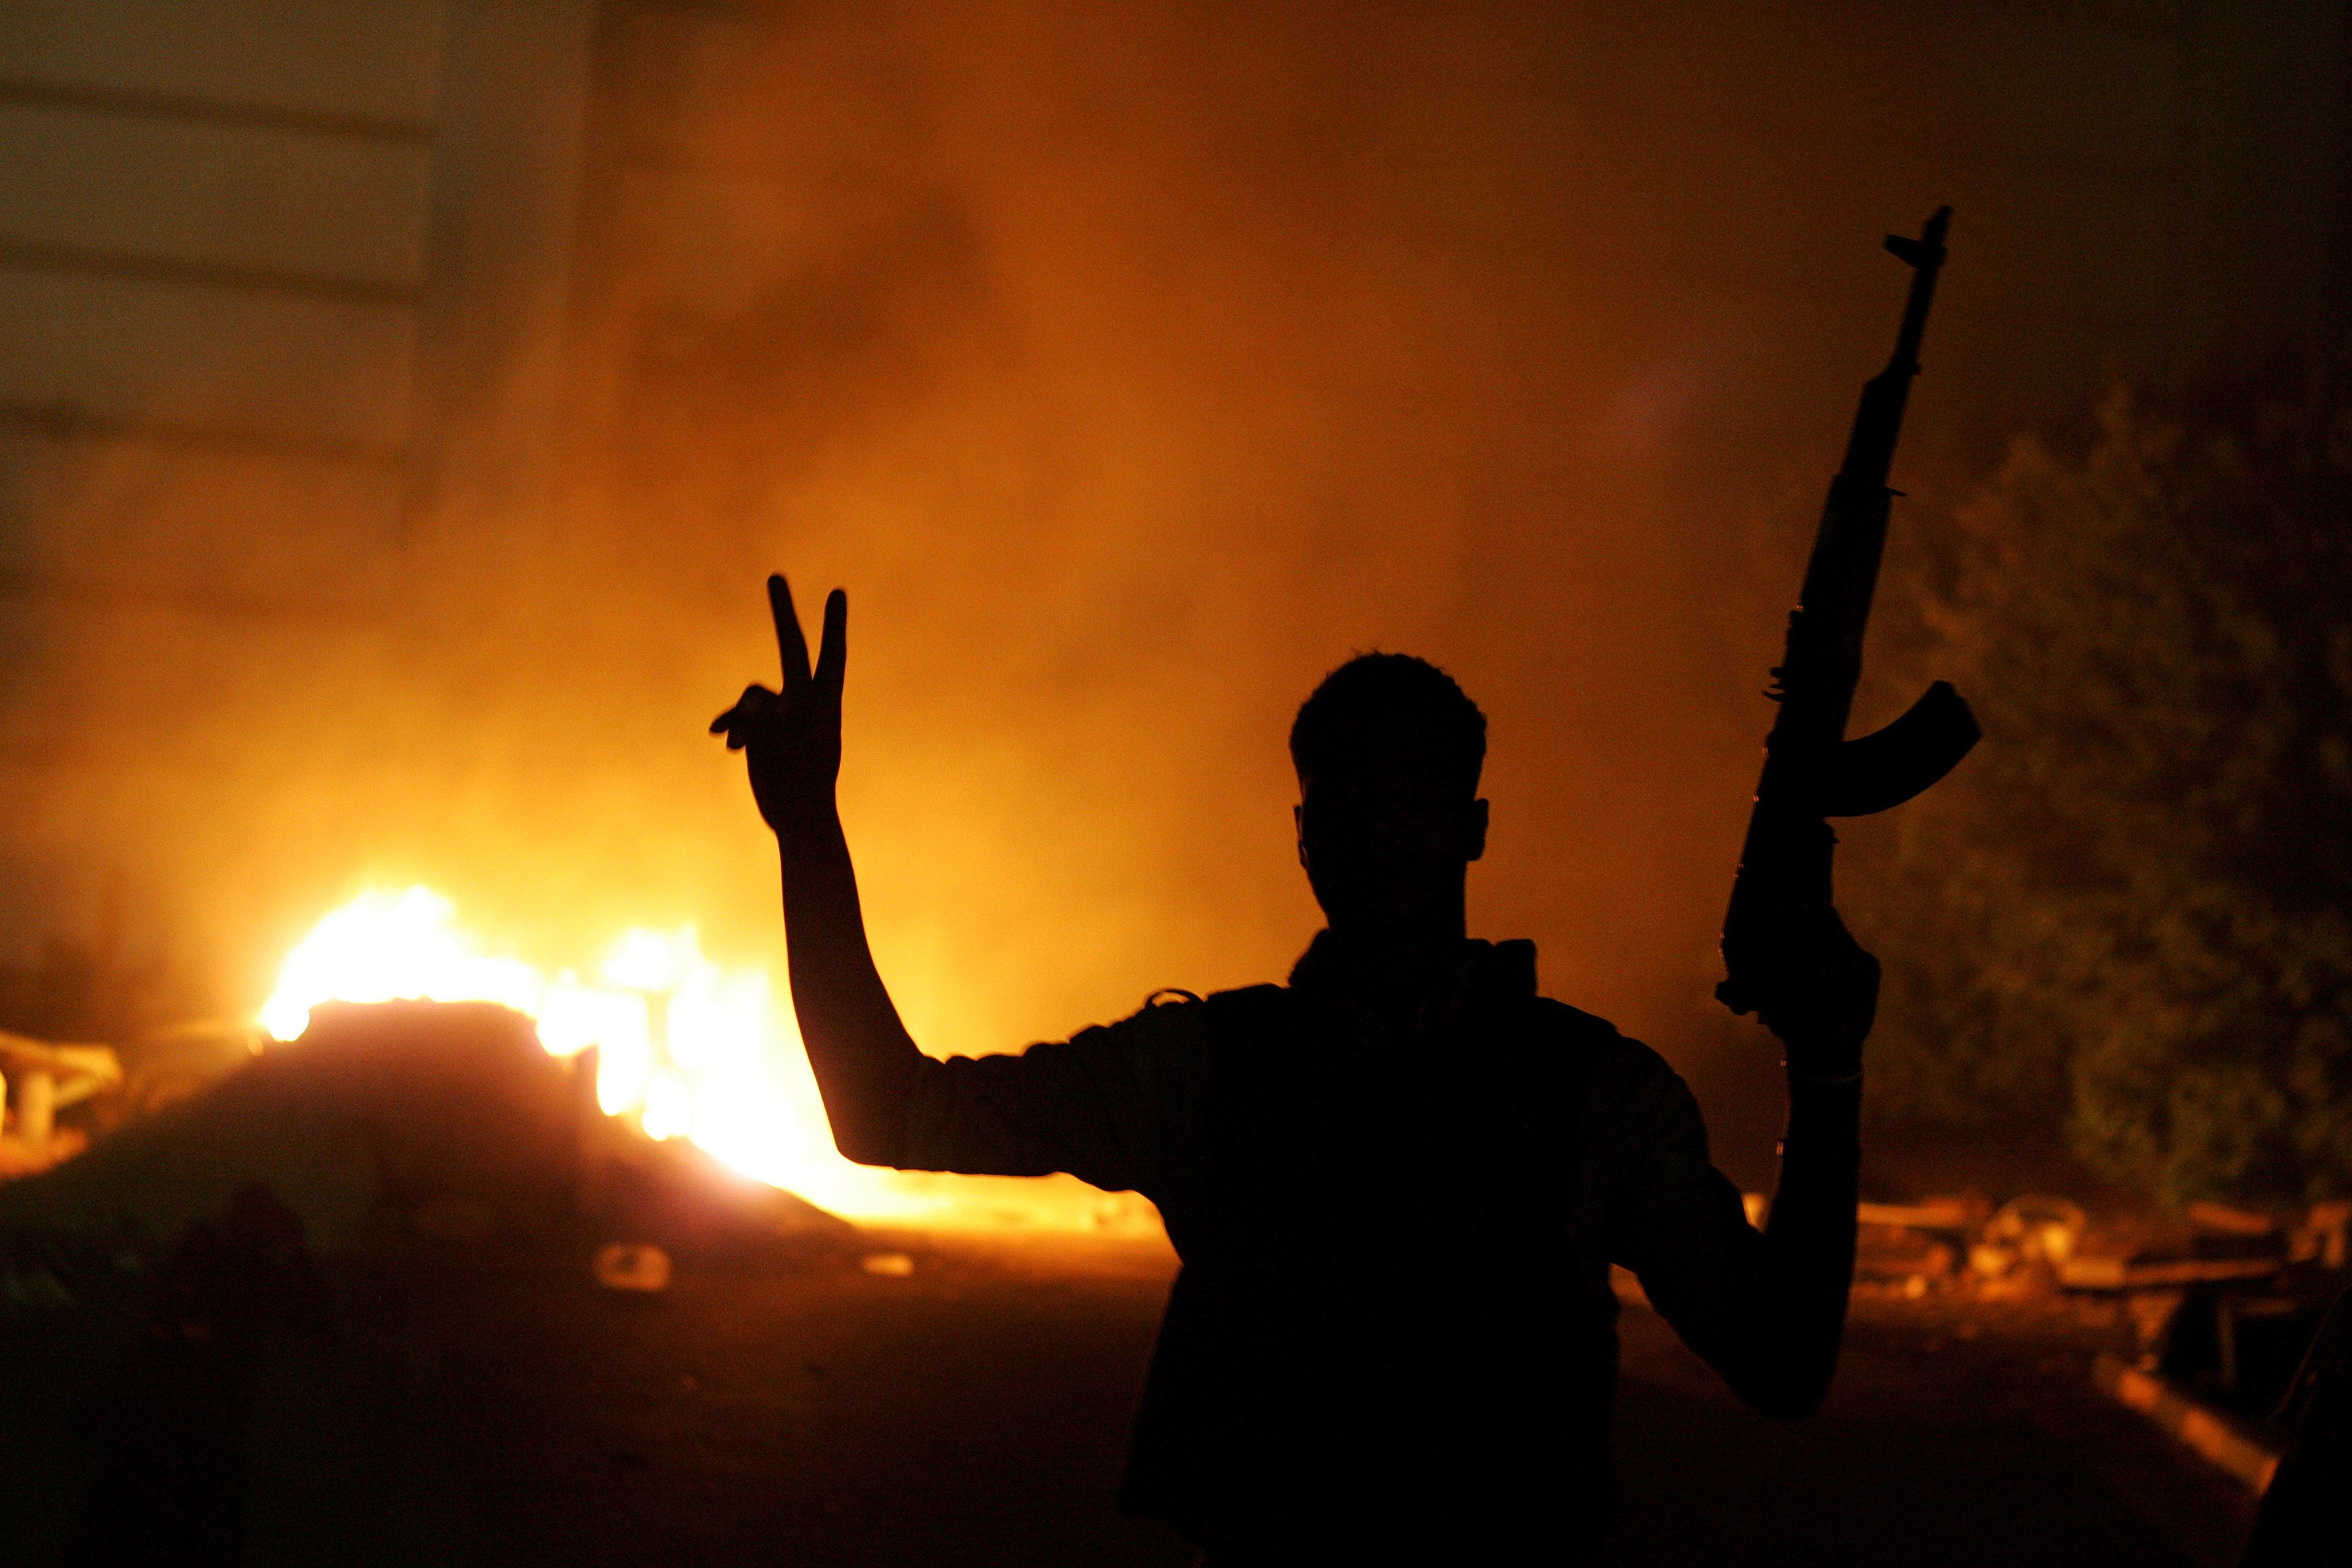 An armed libyan man flashes the victory sign in front of a fire at the hardline Islamist group Ansar el-Sharia headquarters on September 21, 2012 in Benghazi, Libya. Hundreds of Libyan protesters forced members of a hardline Islamist militia out of their base in the second city of Benghazi late on September 21, setting fire to and wrecking the compound. Members of the Salafist jihadi group Ansar al-Sharia fired in the air before being forced out of their base by the demonstrators. AFP PHOTO / ABDULLAH DOMA        (Photo credit should read ABDULLAH DOMA/AFP/GettyImages)